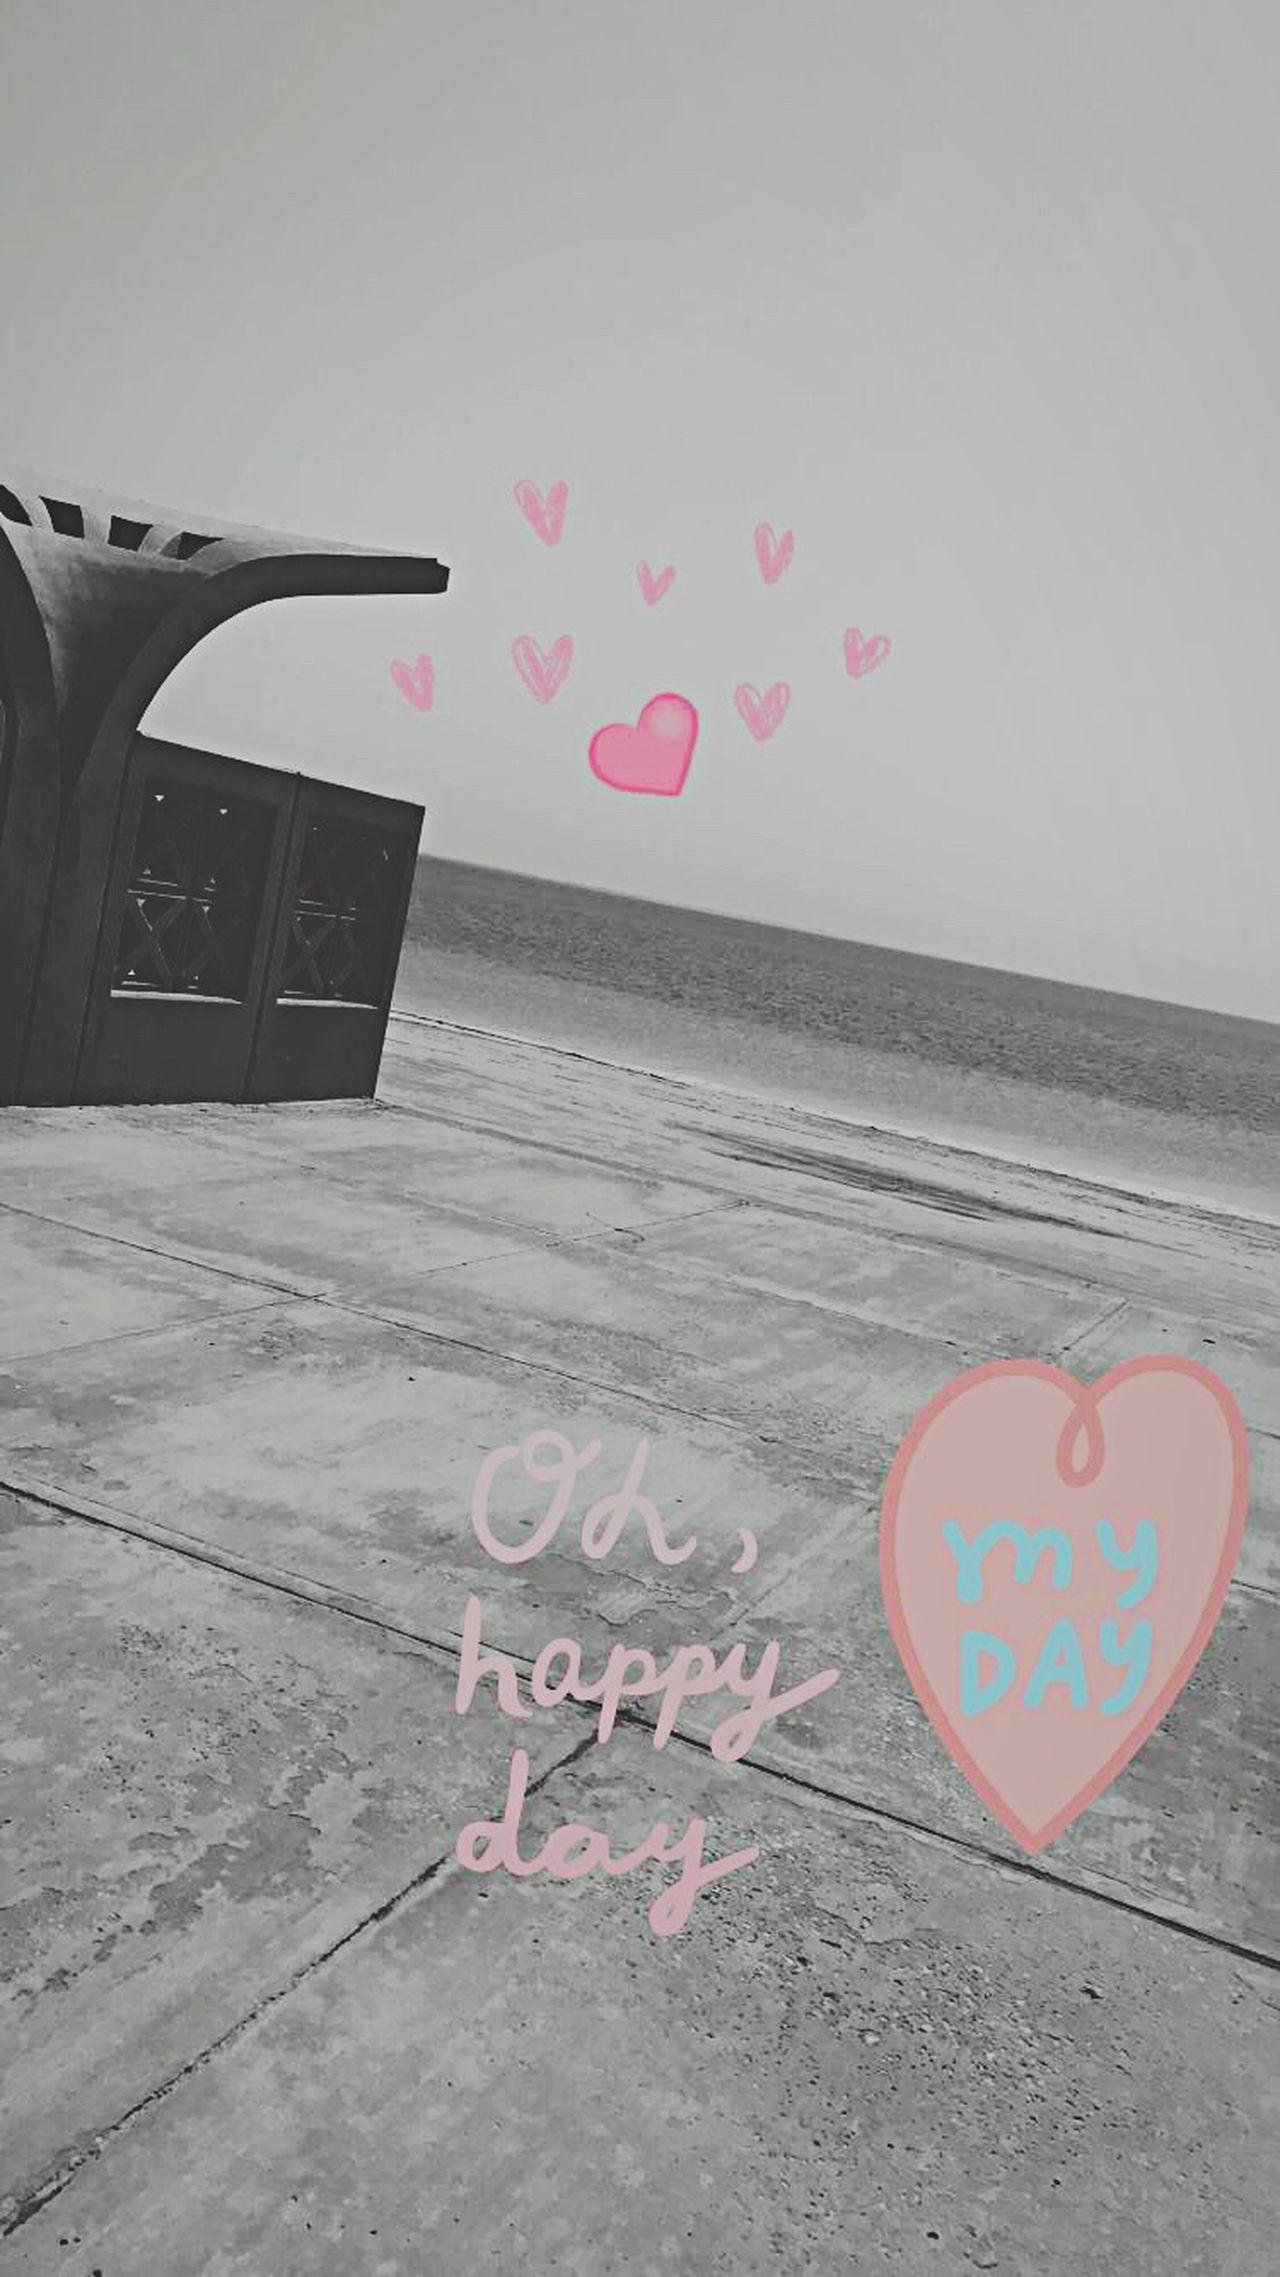 Heart Shape Love Creativity No People Text Paper Celebration Handwriting  Communication Indoors  Close-up Day Beach Taking Pictures Nature Mobilephotography Scenics Horizon Over Water